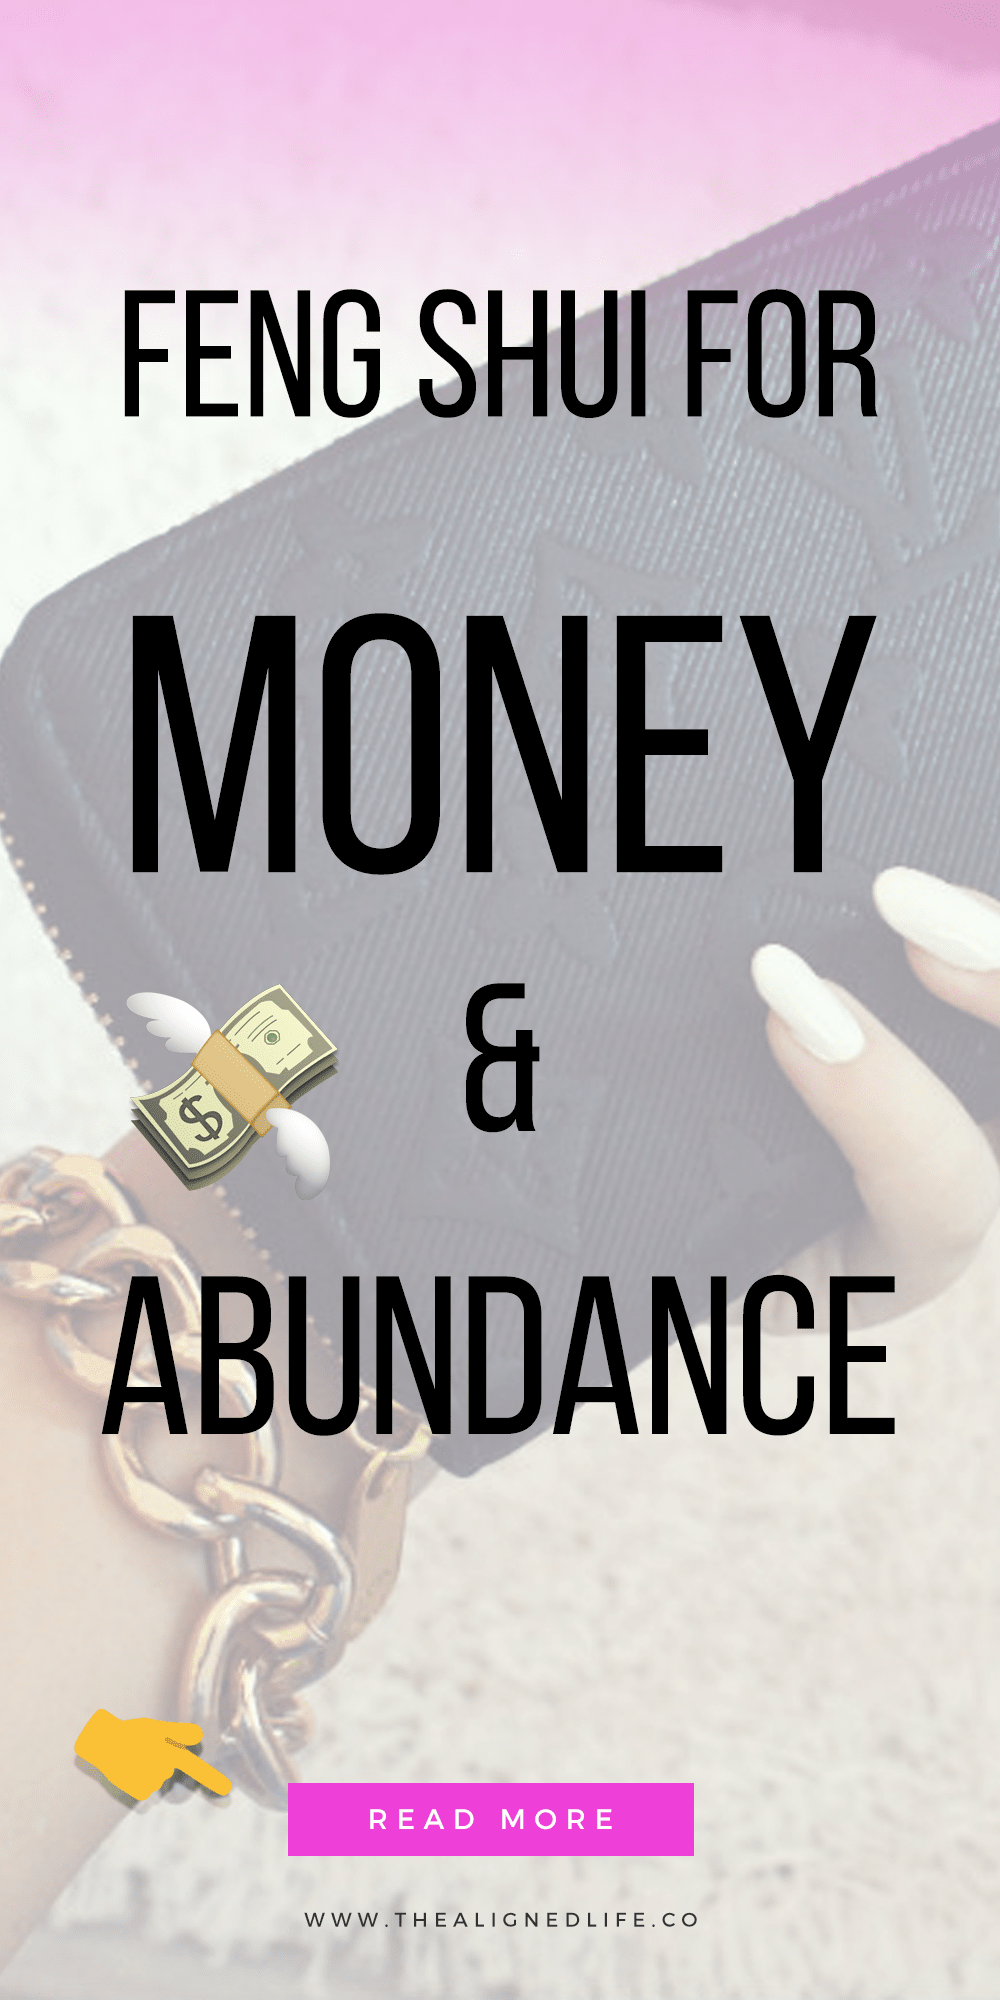 hand with wallet and text 10 Feng Shui Tricks for Money & Abundance